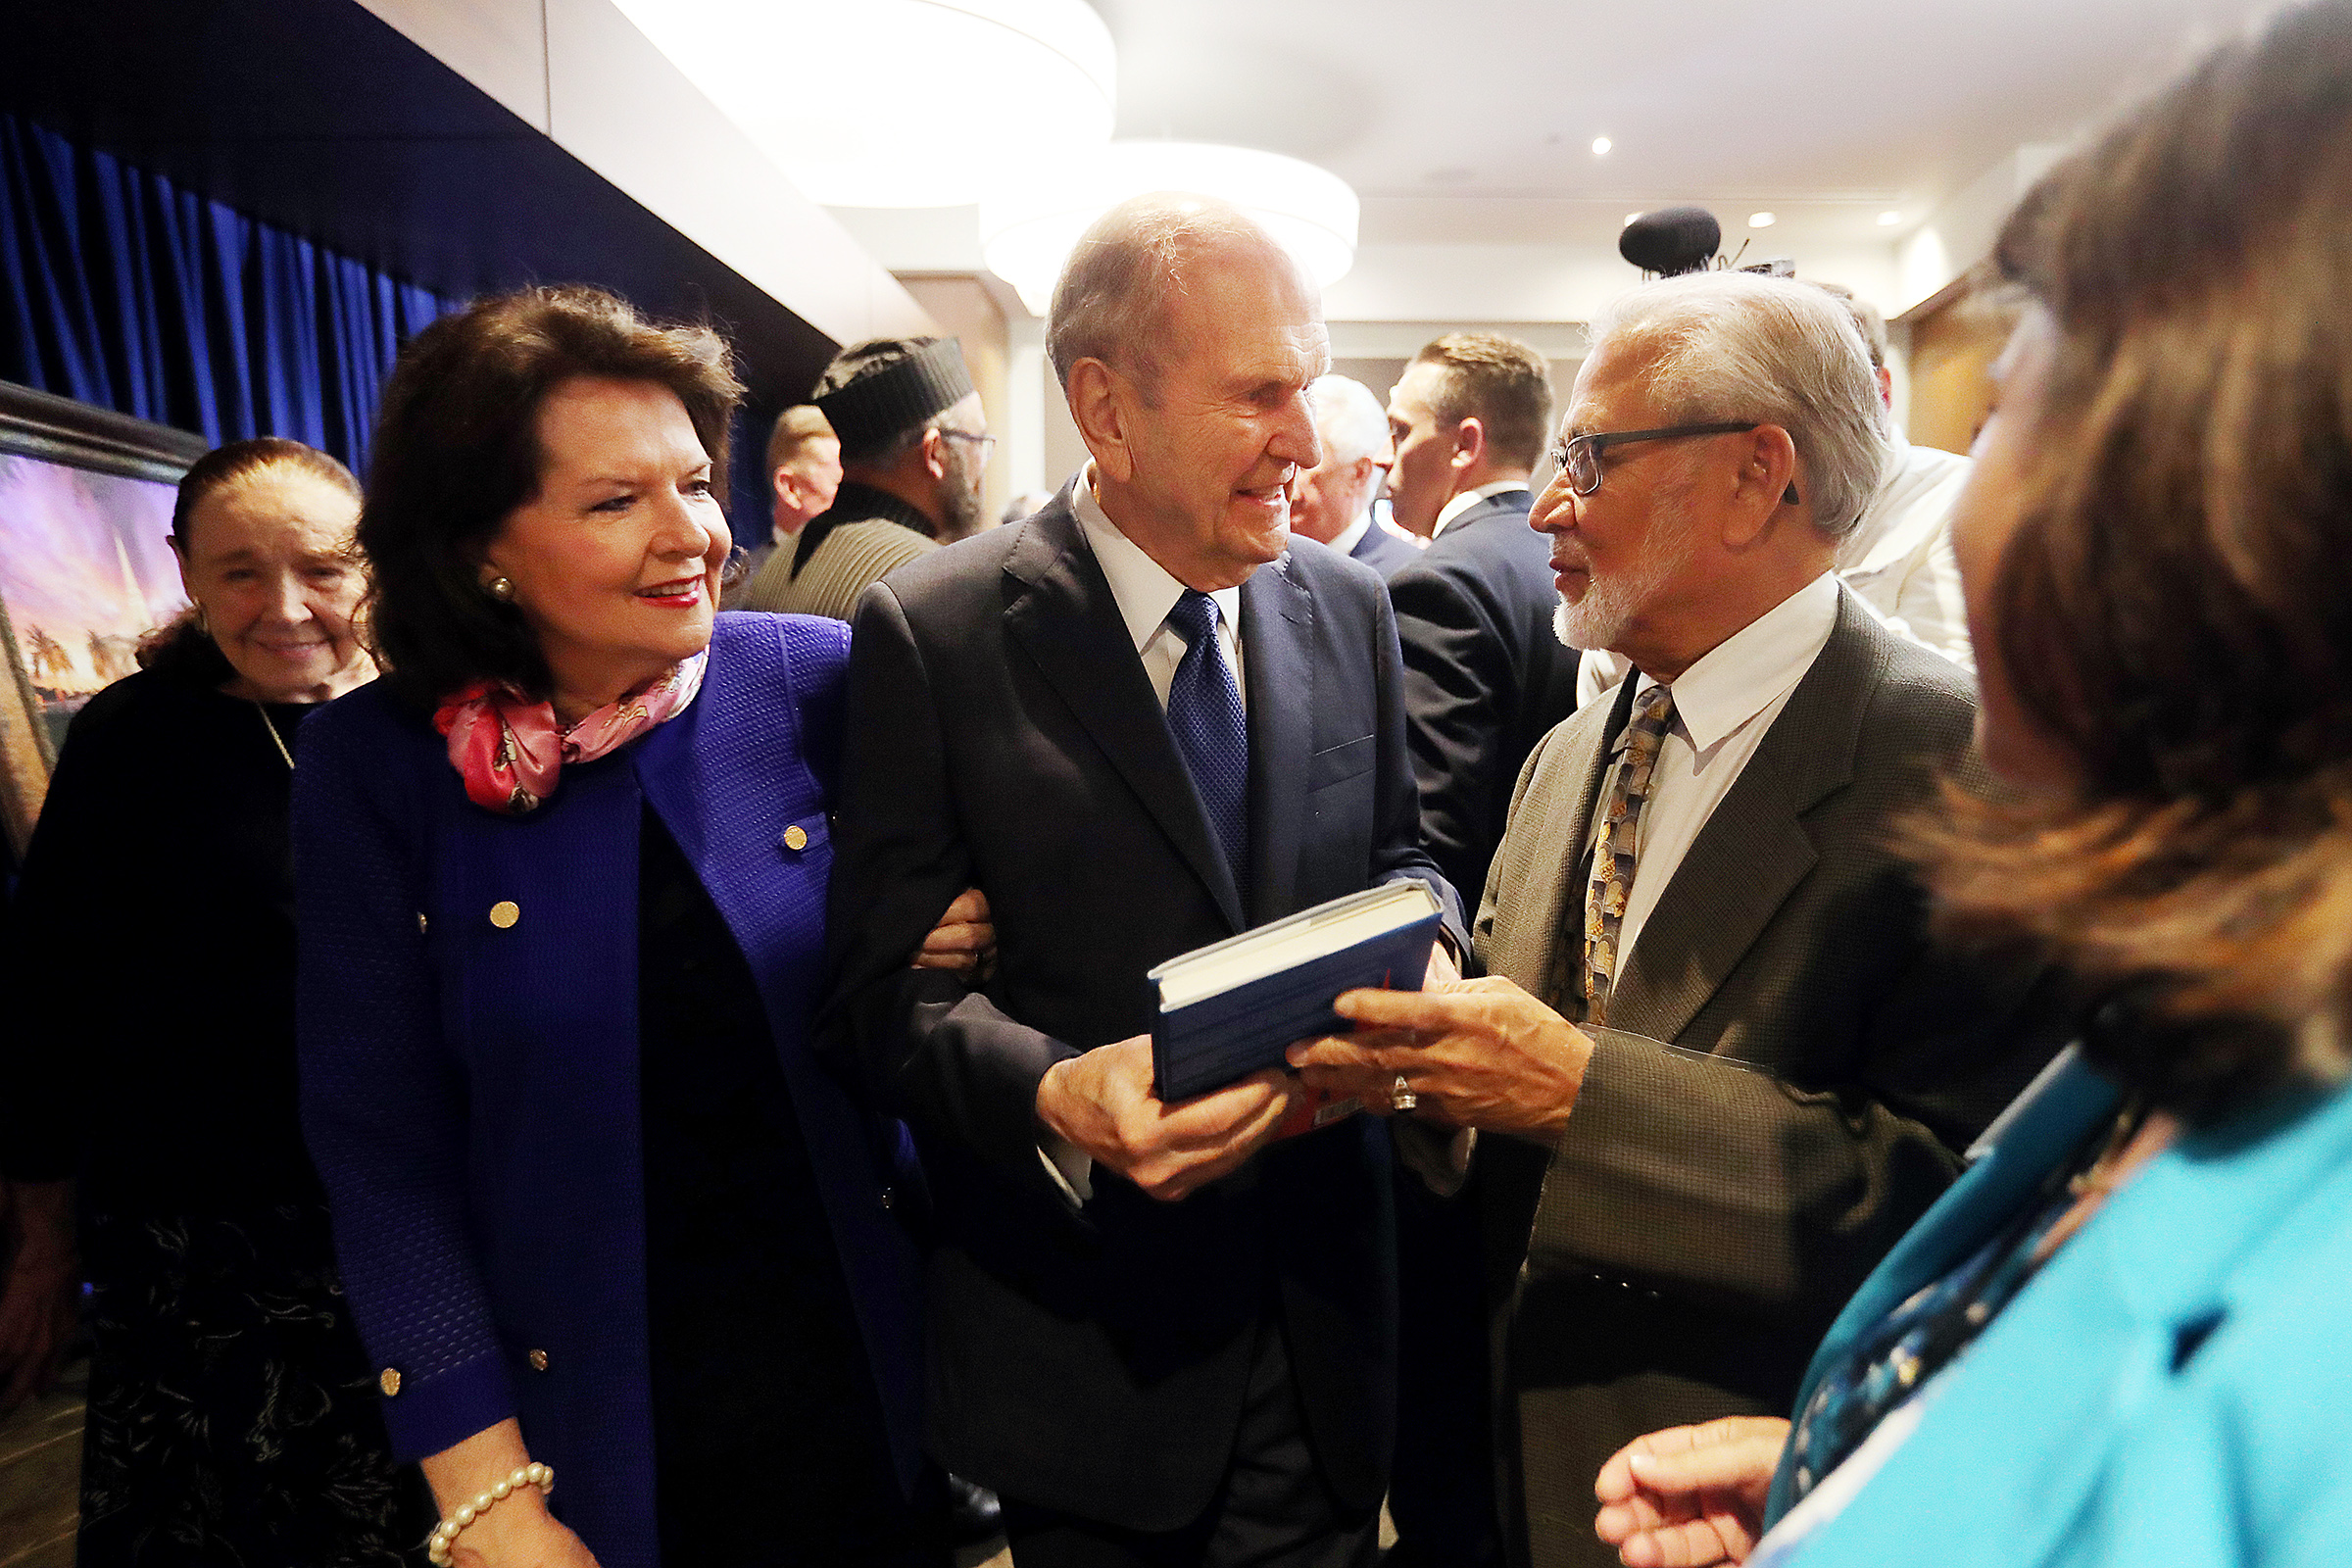 President Russell M. Nelson, is handed a book from Victor Begg as he and his wife, Sister Wendy Nelson, meet VIPs prior to a devotional at the Amway Center in Orlando, Florida, on Sunday, June 9, 2019.